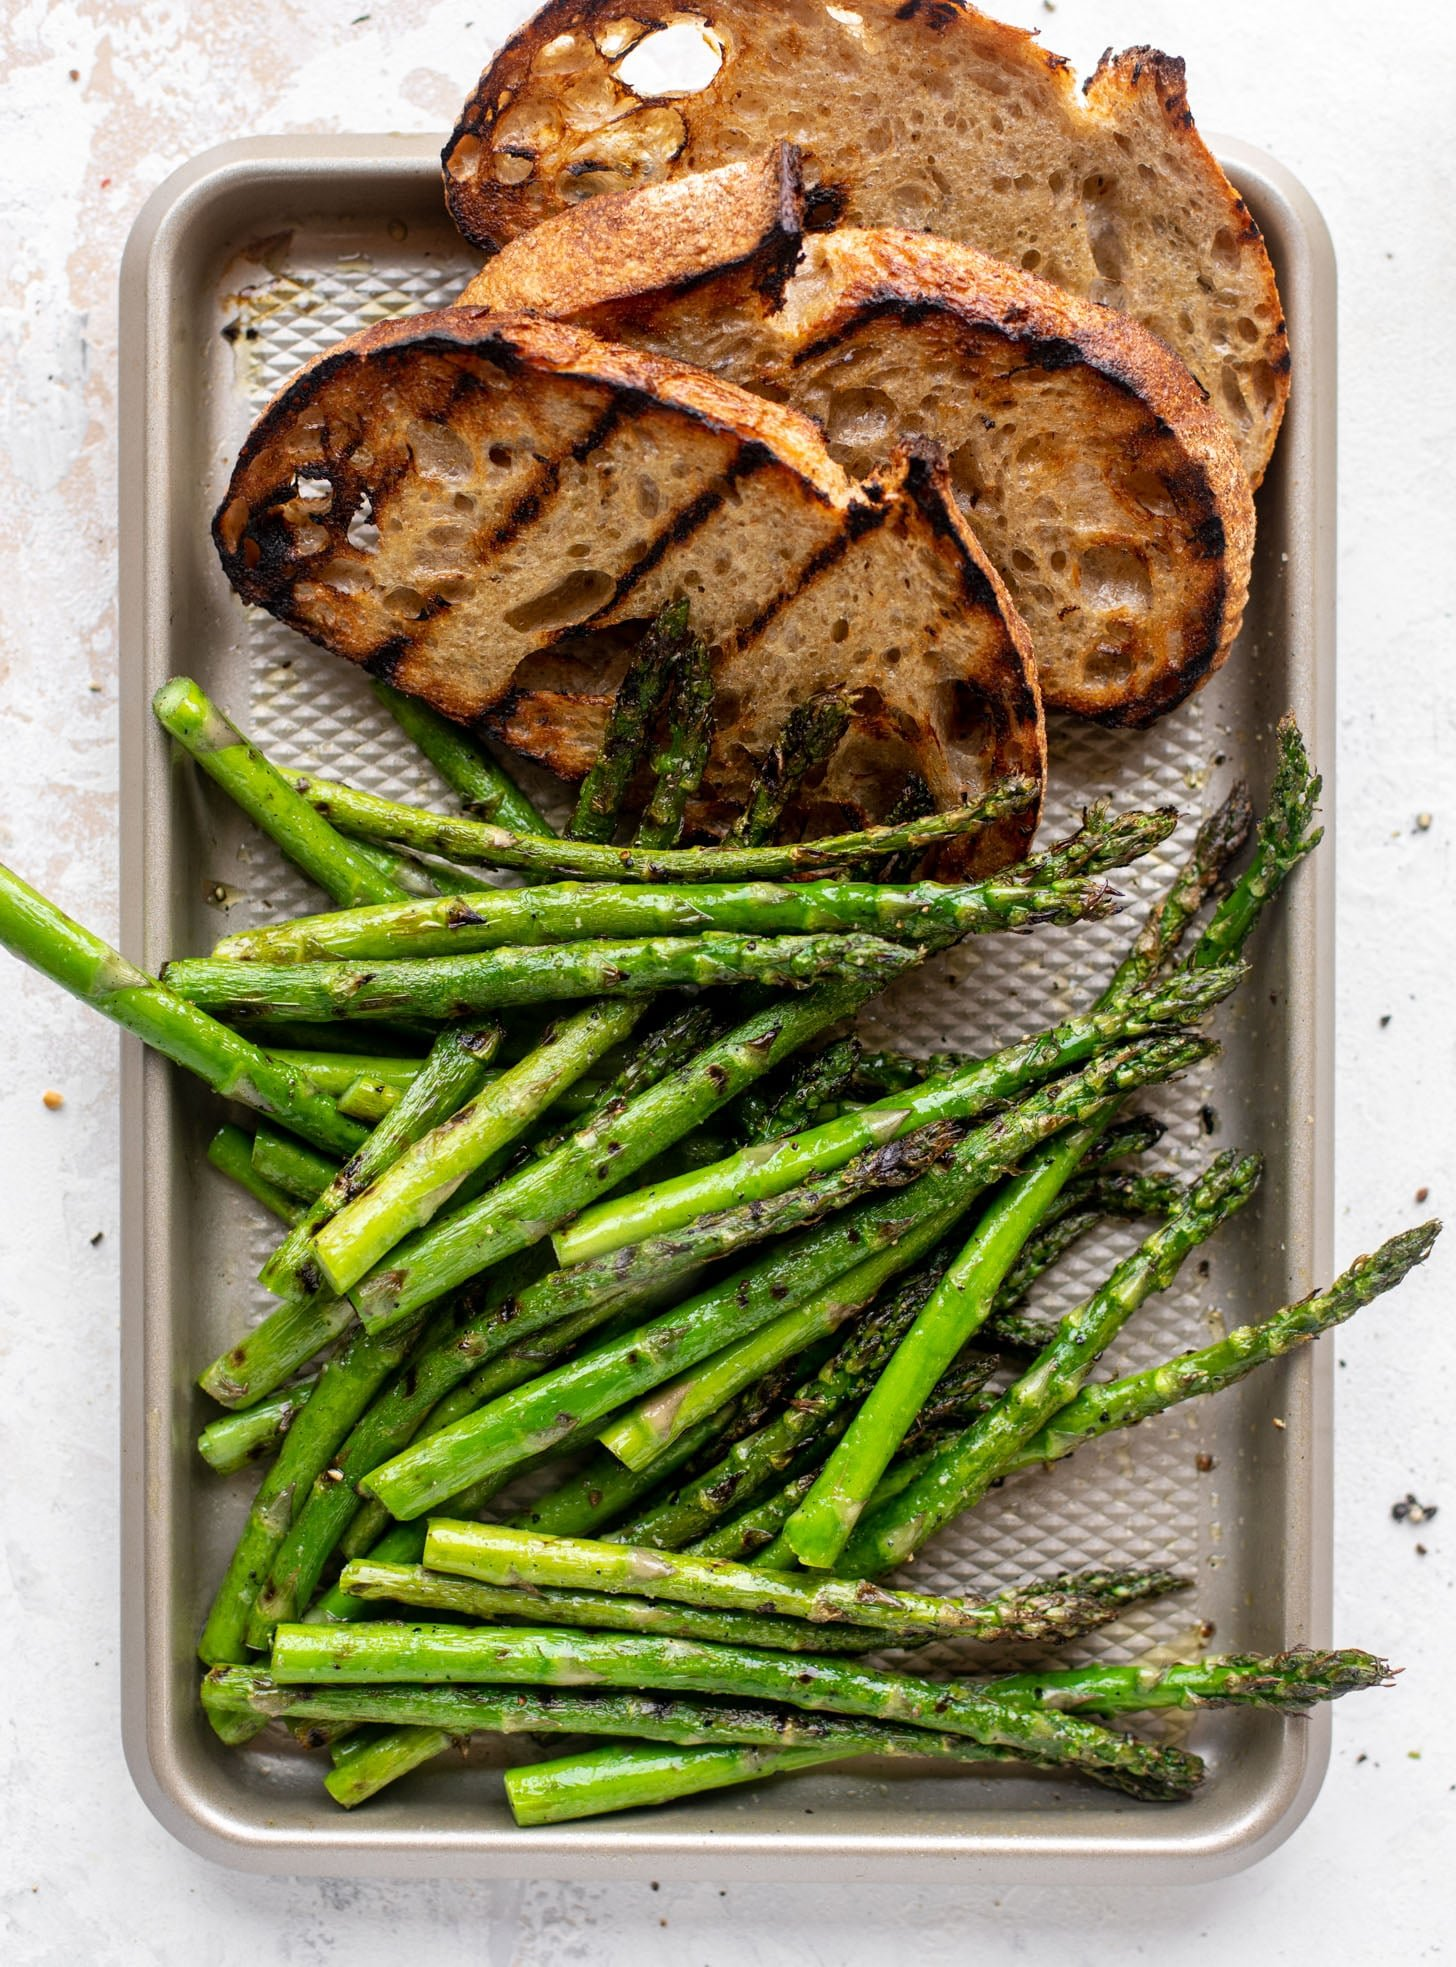 grilled bread and asparagus